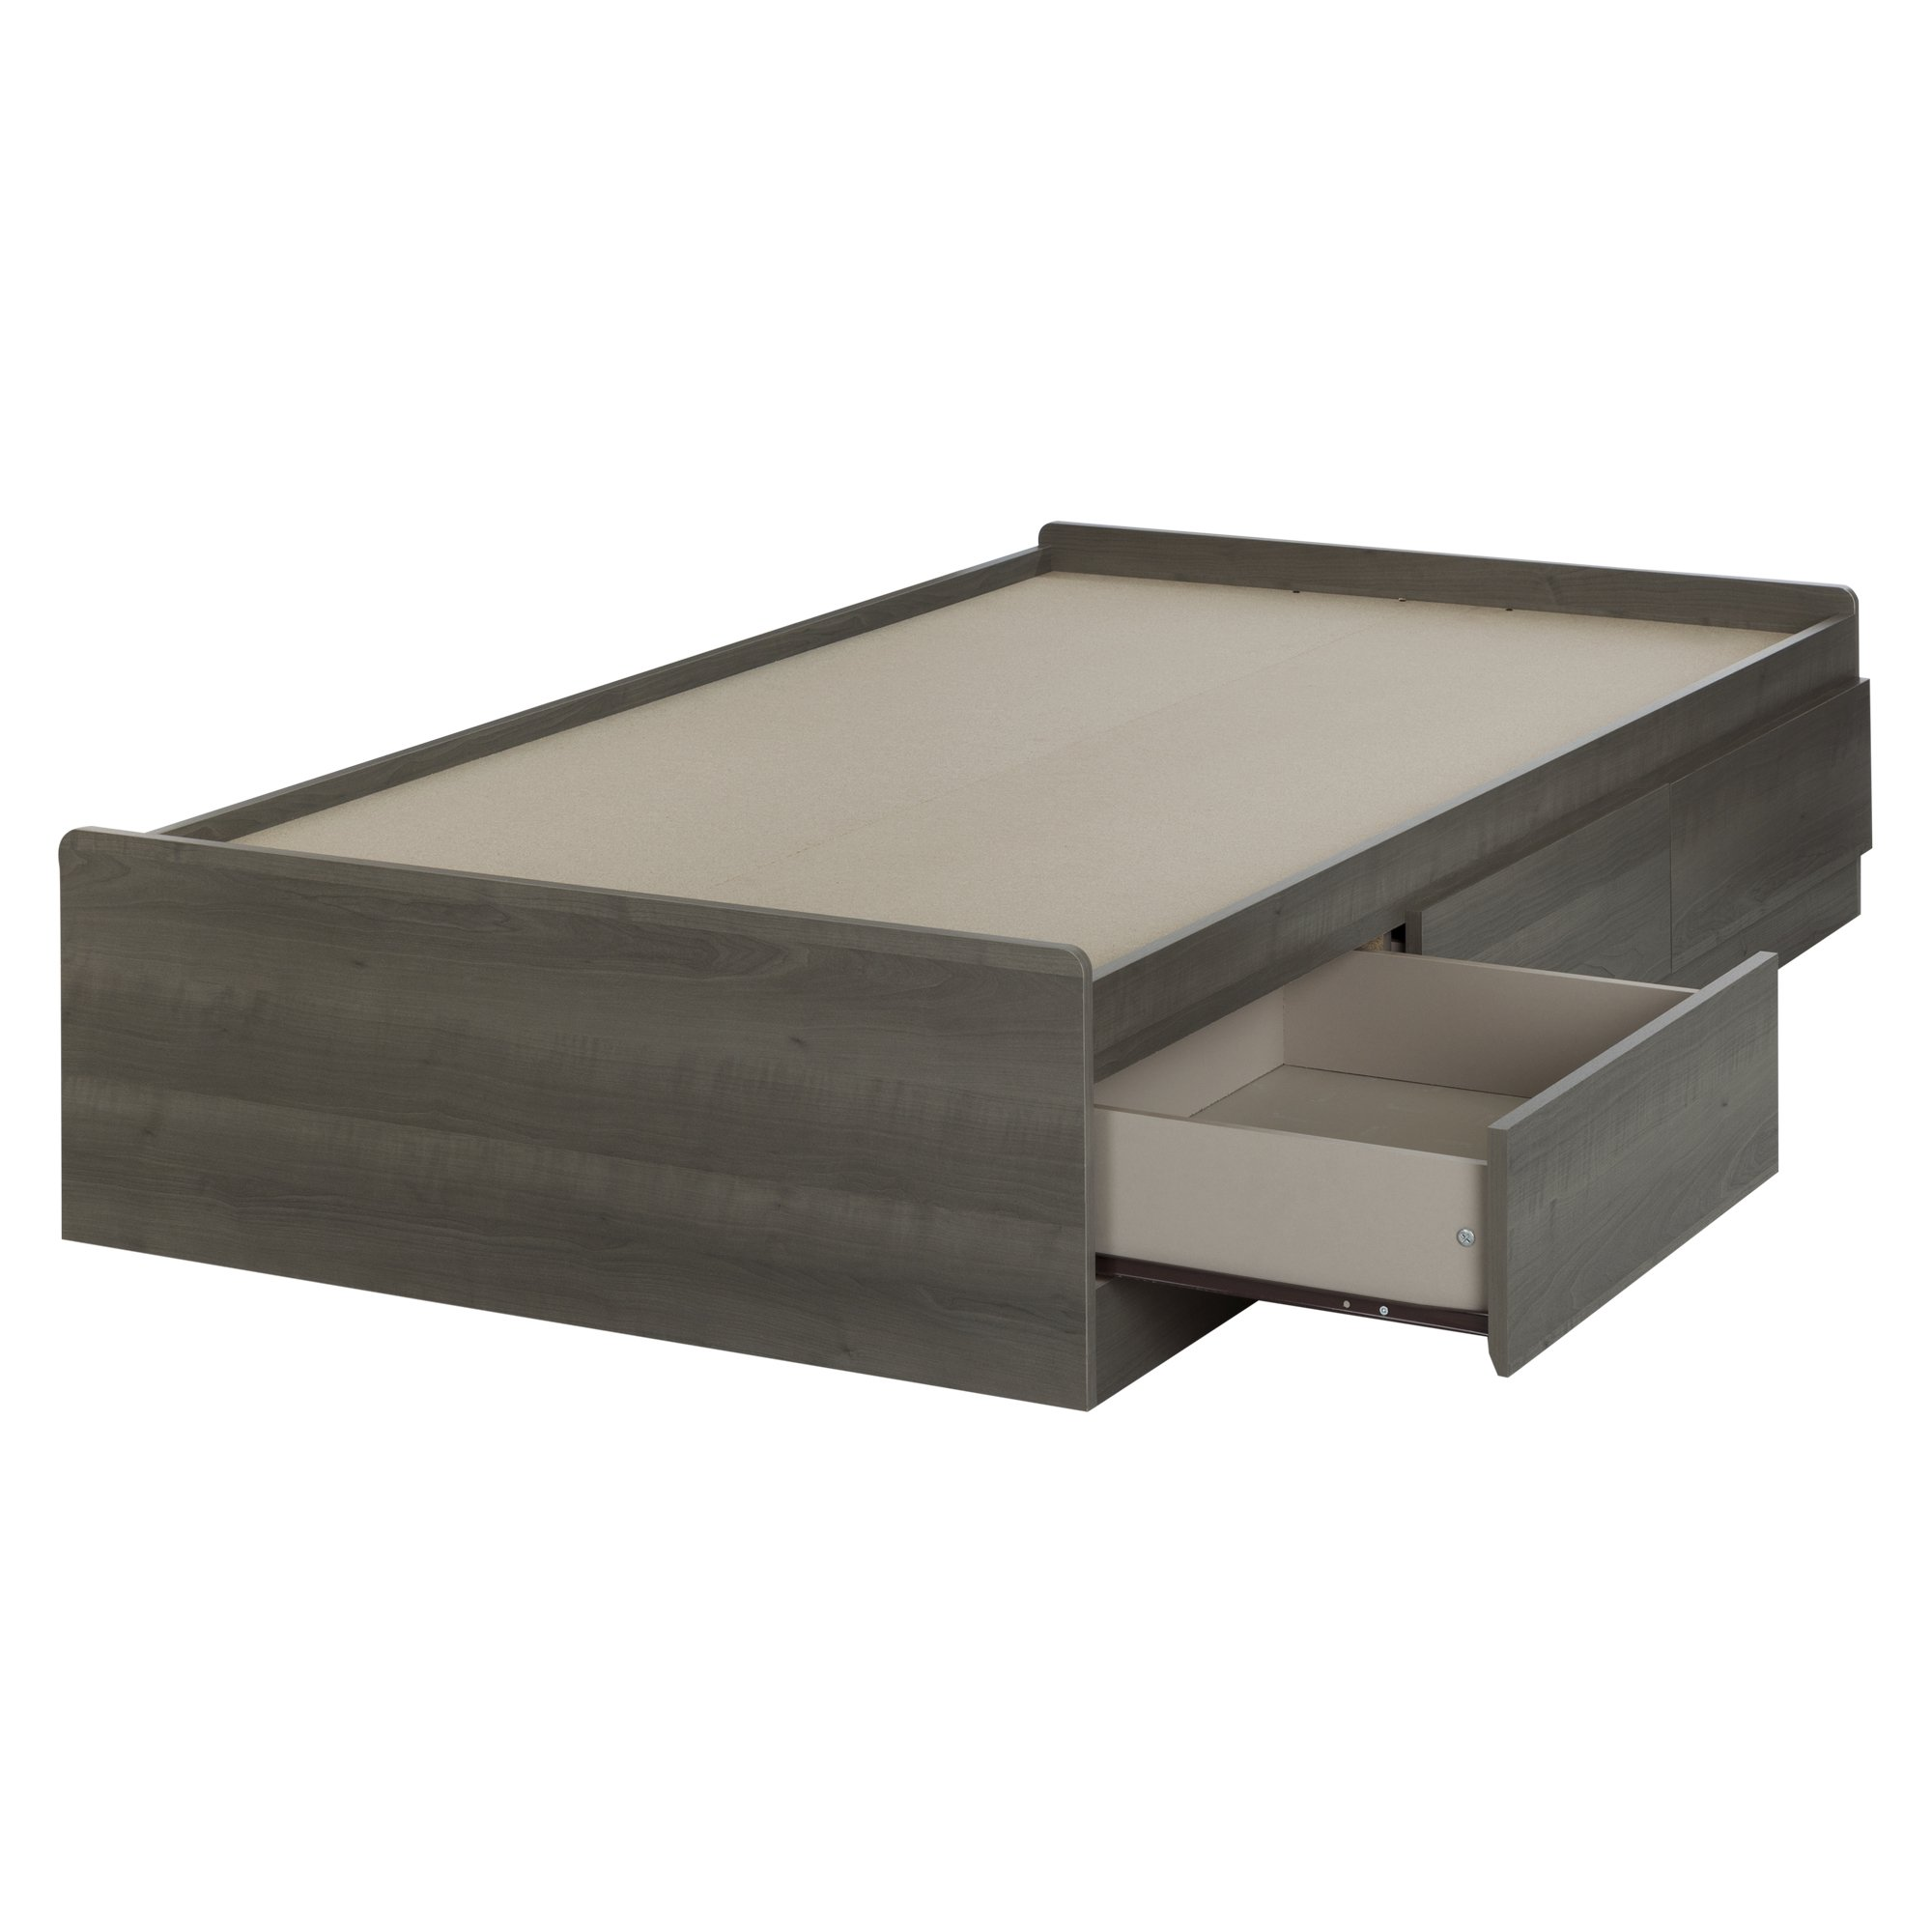 South Shore Savannah 39'' Mates Bed with 3-Drawers, Twin, Gray Maple